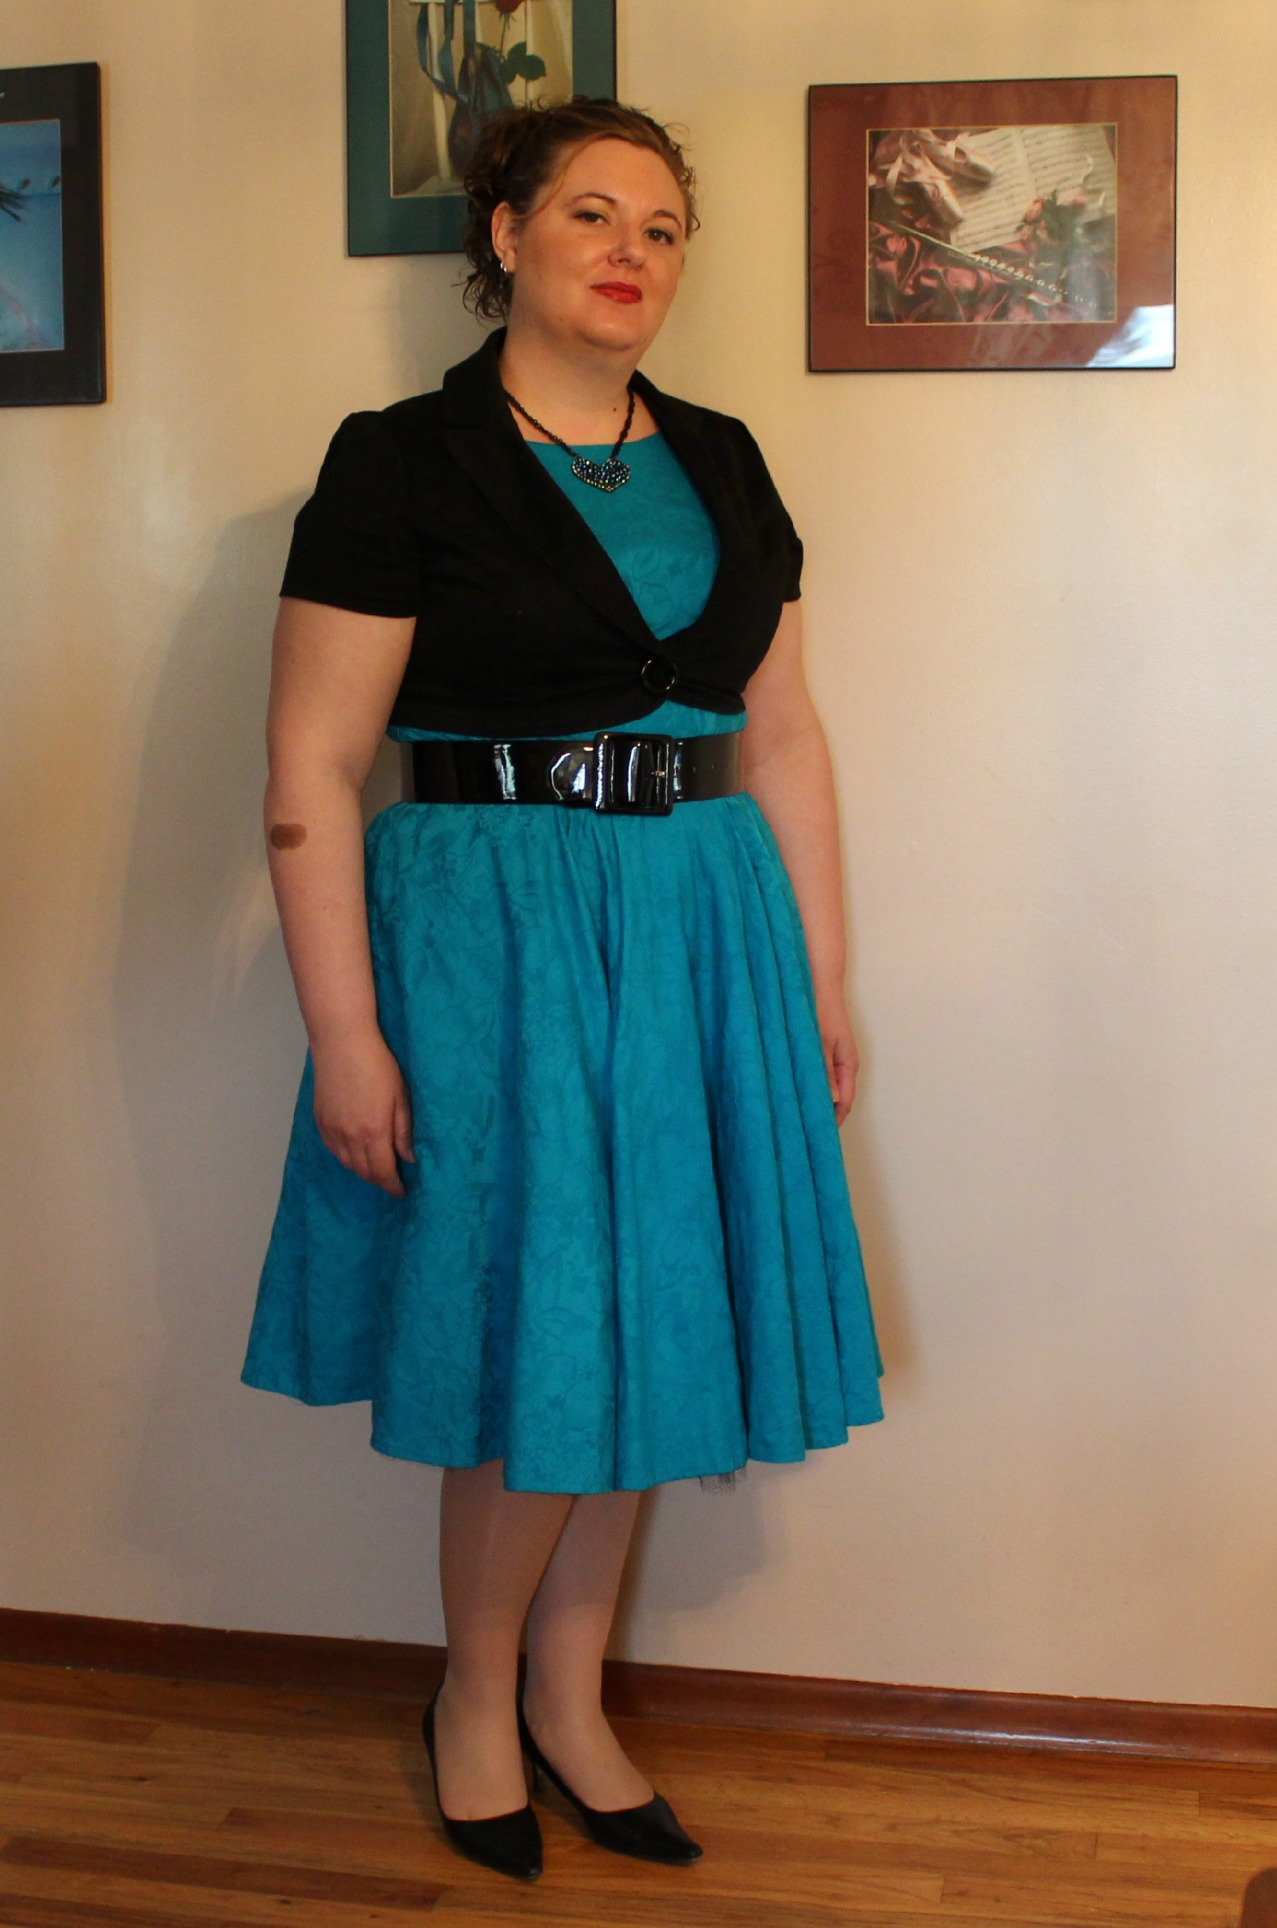 60's dress less puffy front